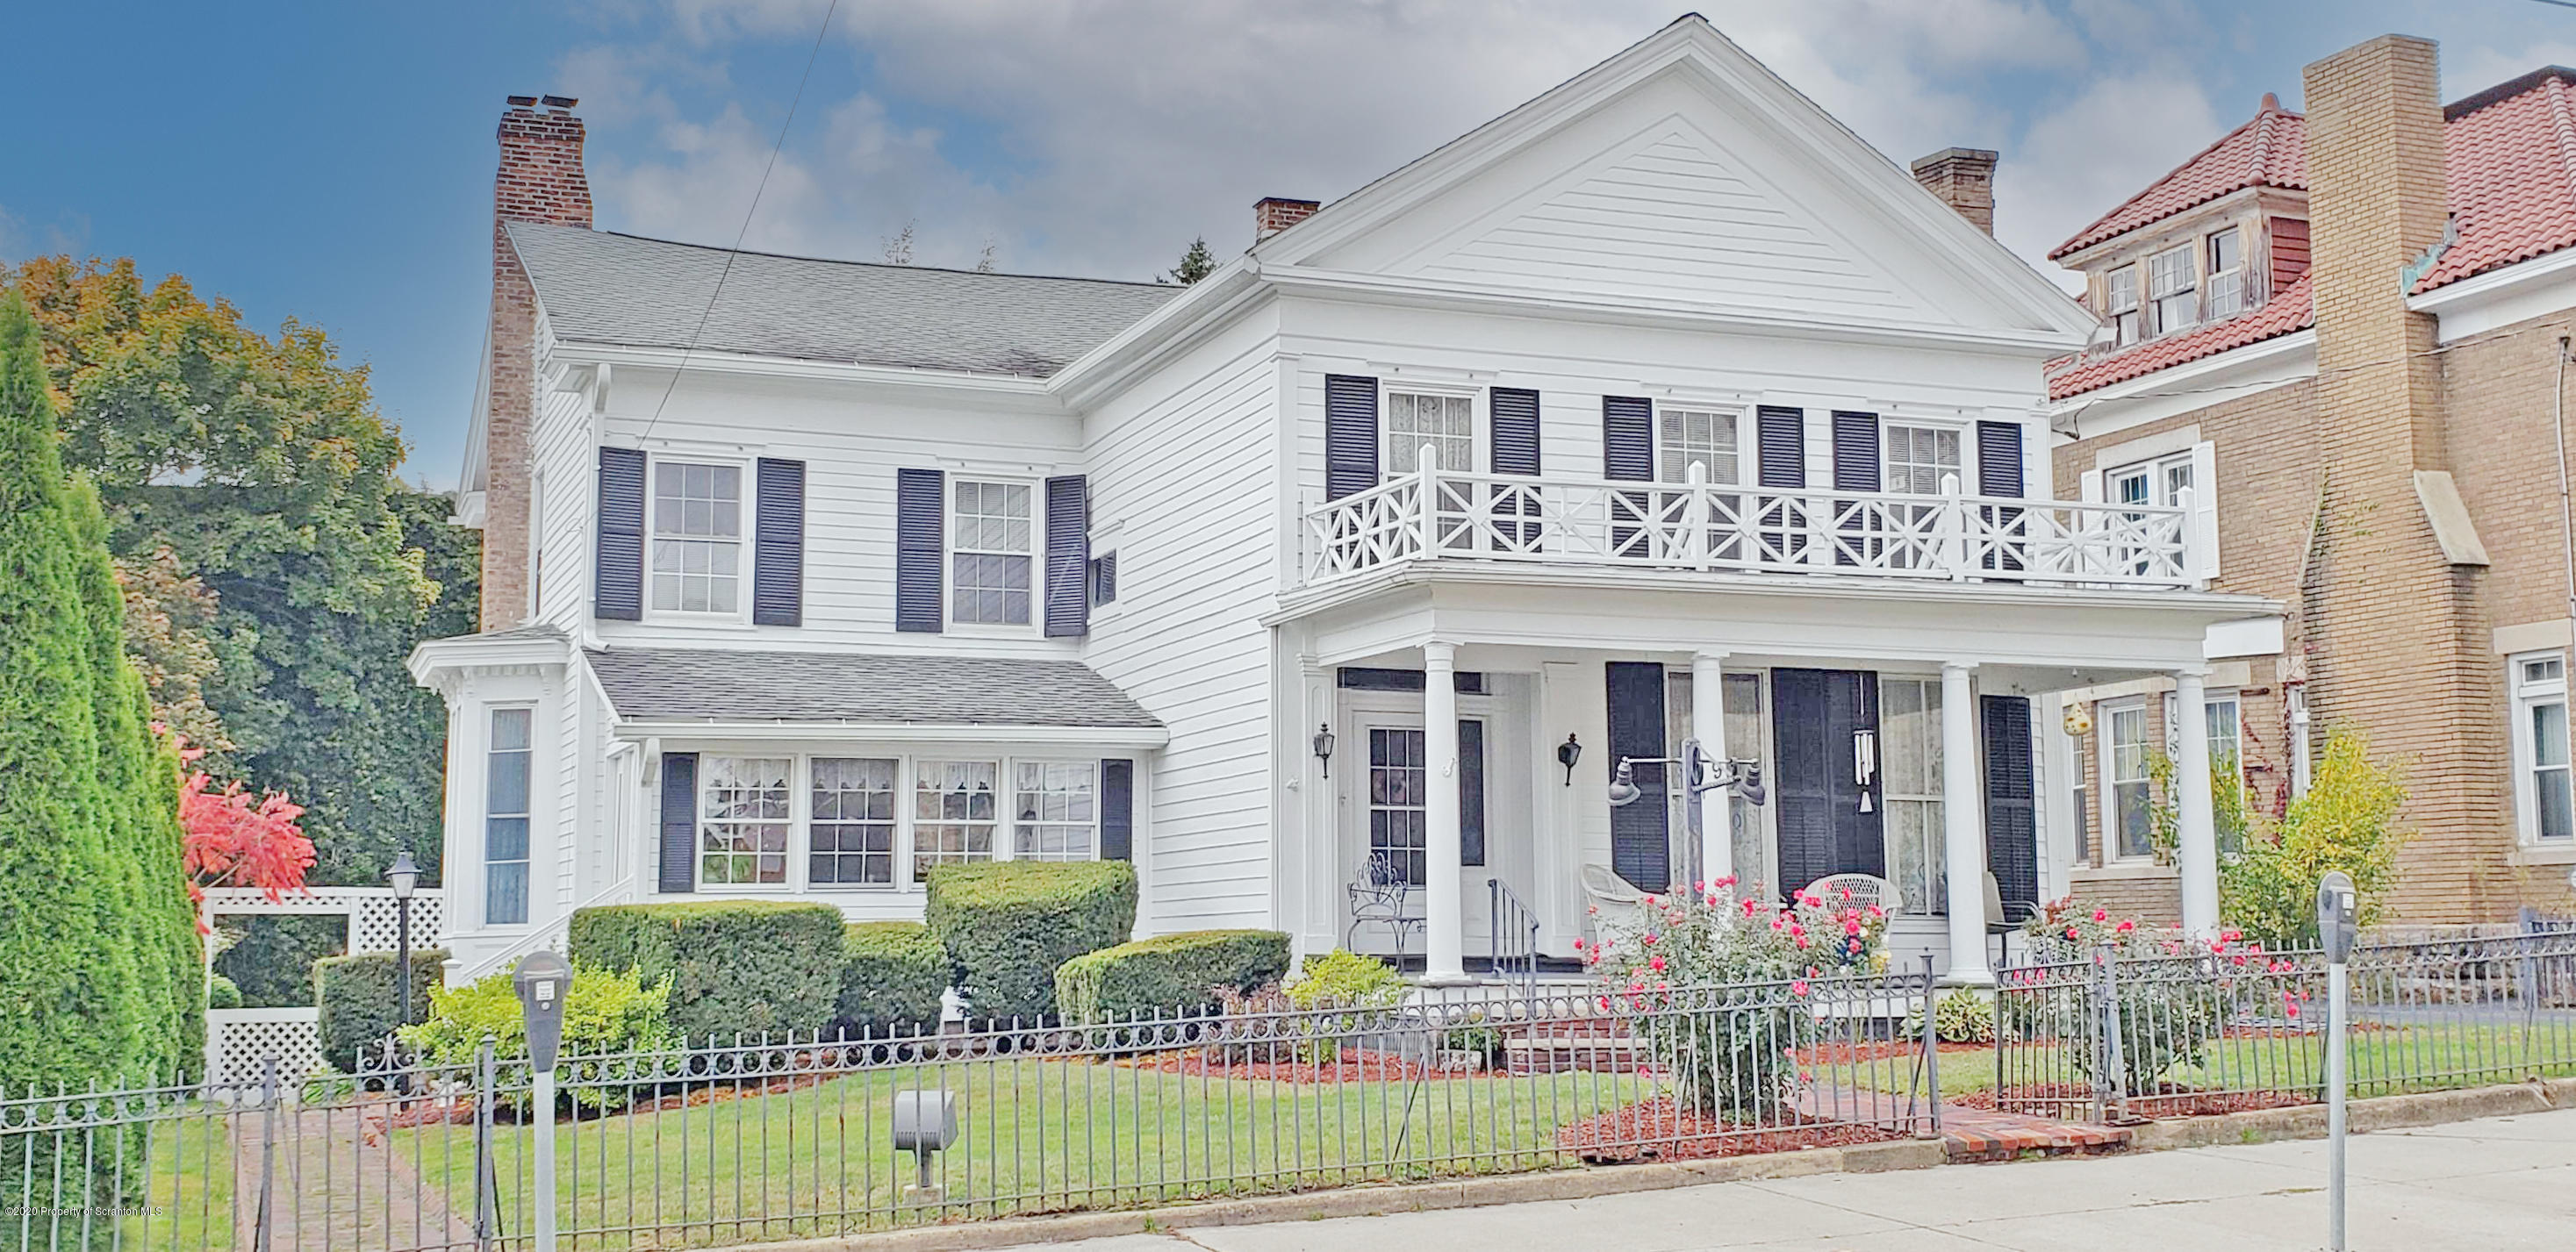 9 Church Street, Carbondale, Pennsylvania 18407, 4 Bedrooms Bedrooms, 9 Rooms Rooms,3 BathroomsBathrooms,Single Family,For Sale,Church,20-5226